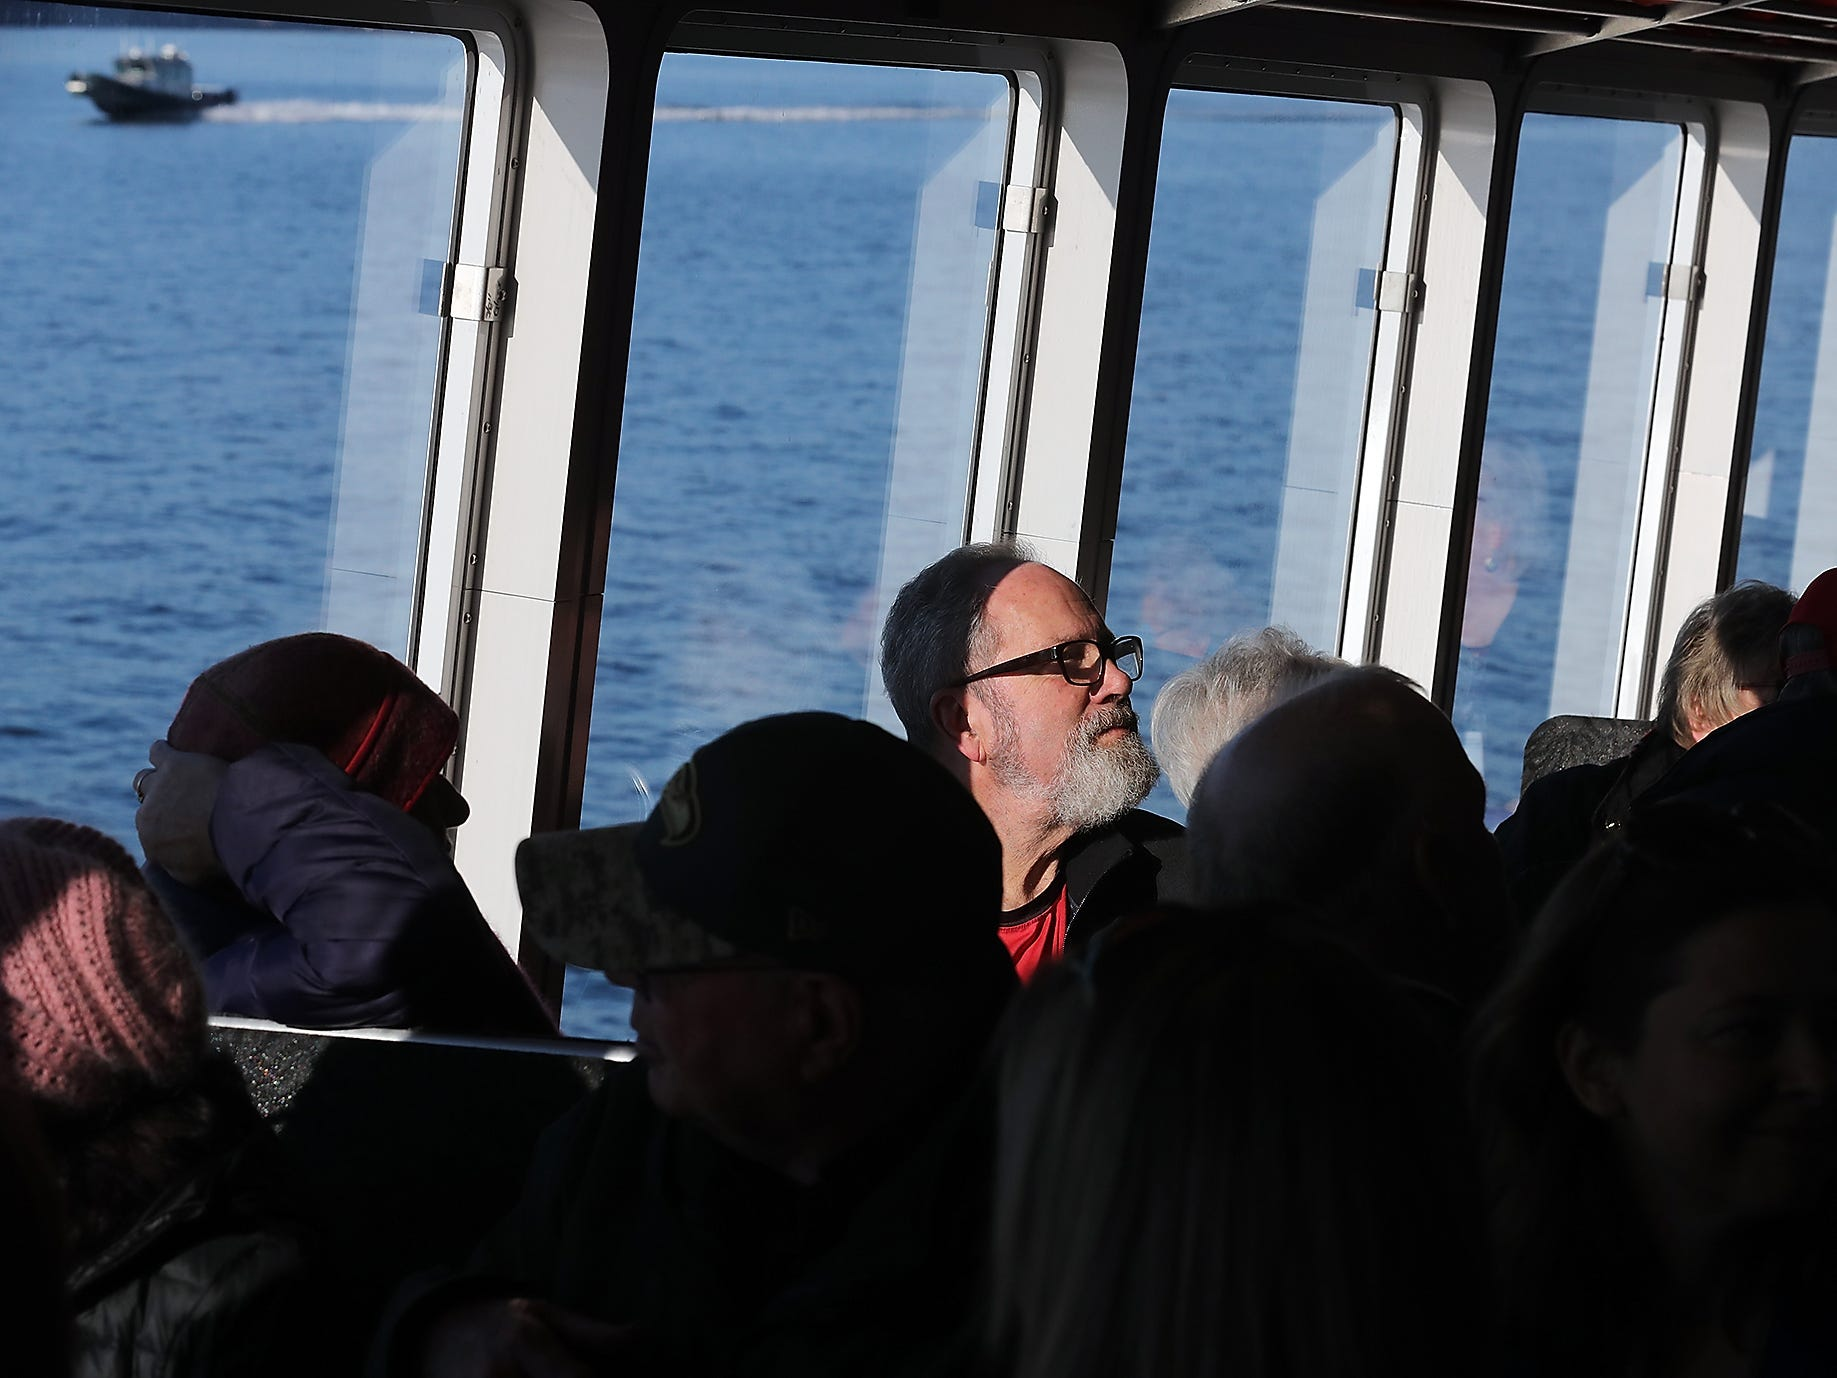 Richard Hayes, former executive director of Kitsap Transit, is illuminated by the sunshine through the window as he rides aboard the M/V Finest on Monday, November 19, 2018.